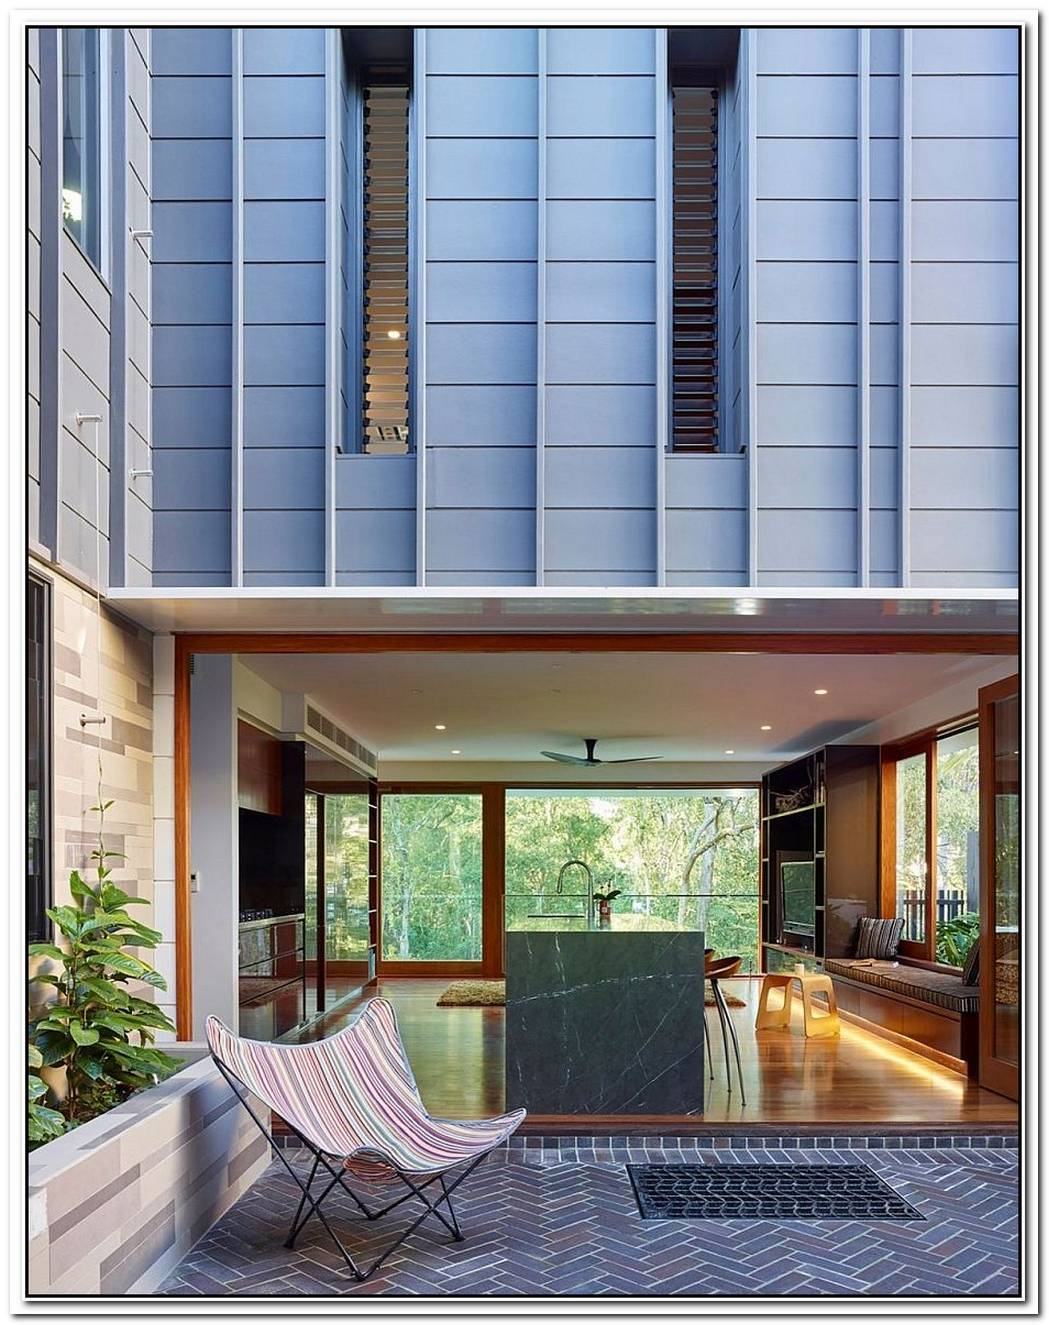 A Tale Of Two ViewsFabulous Fifth Avenue Residence In Bardon